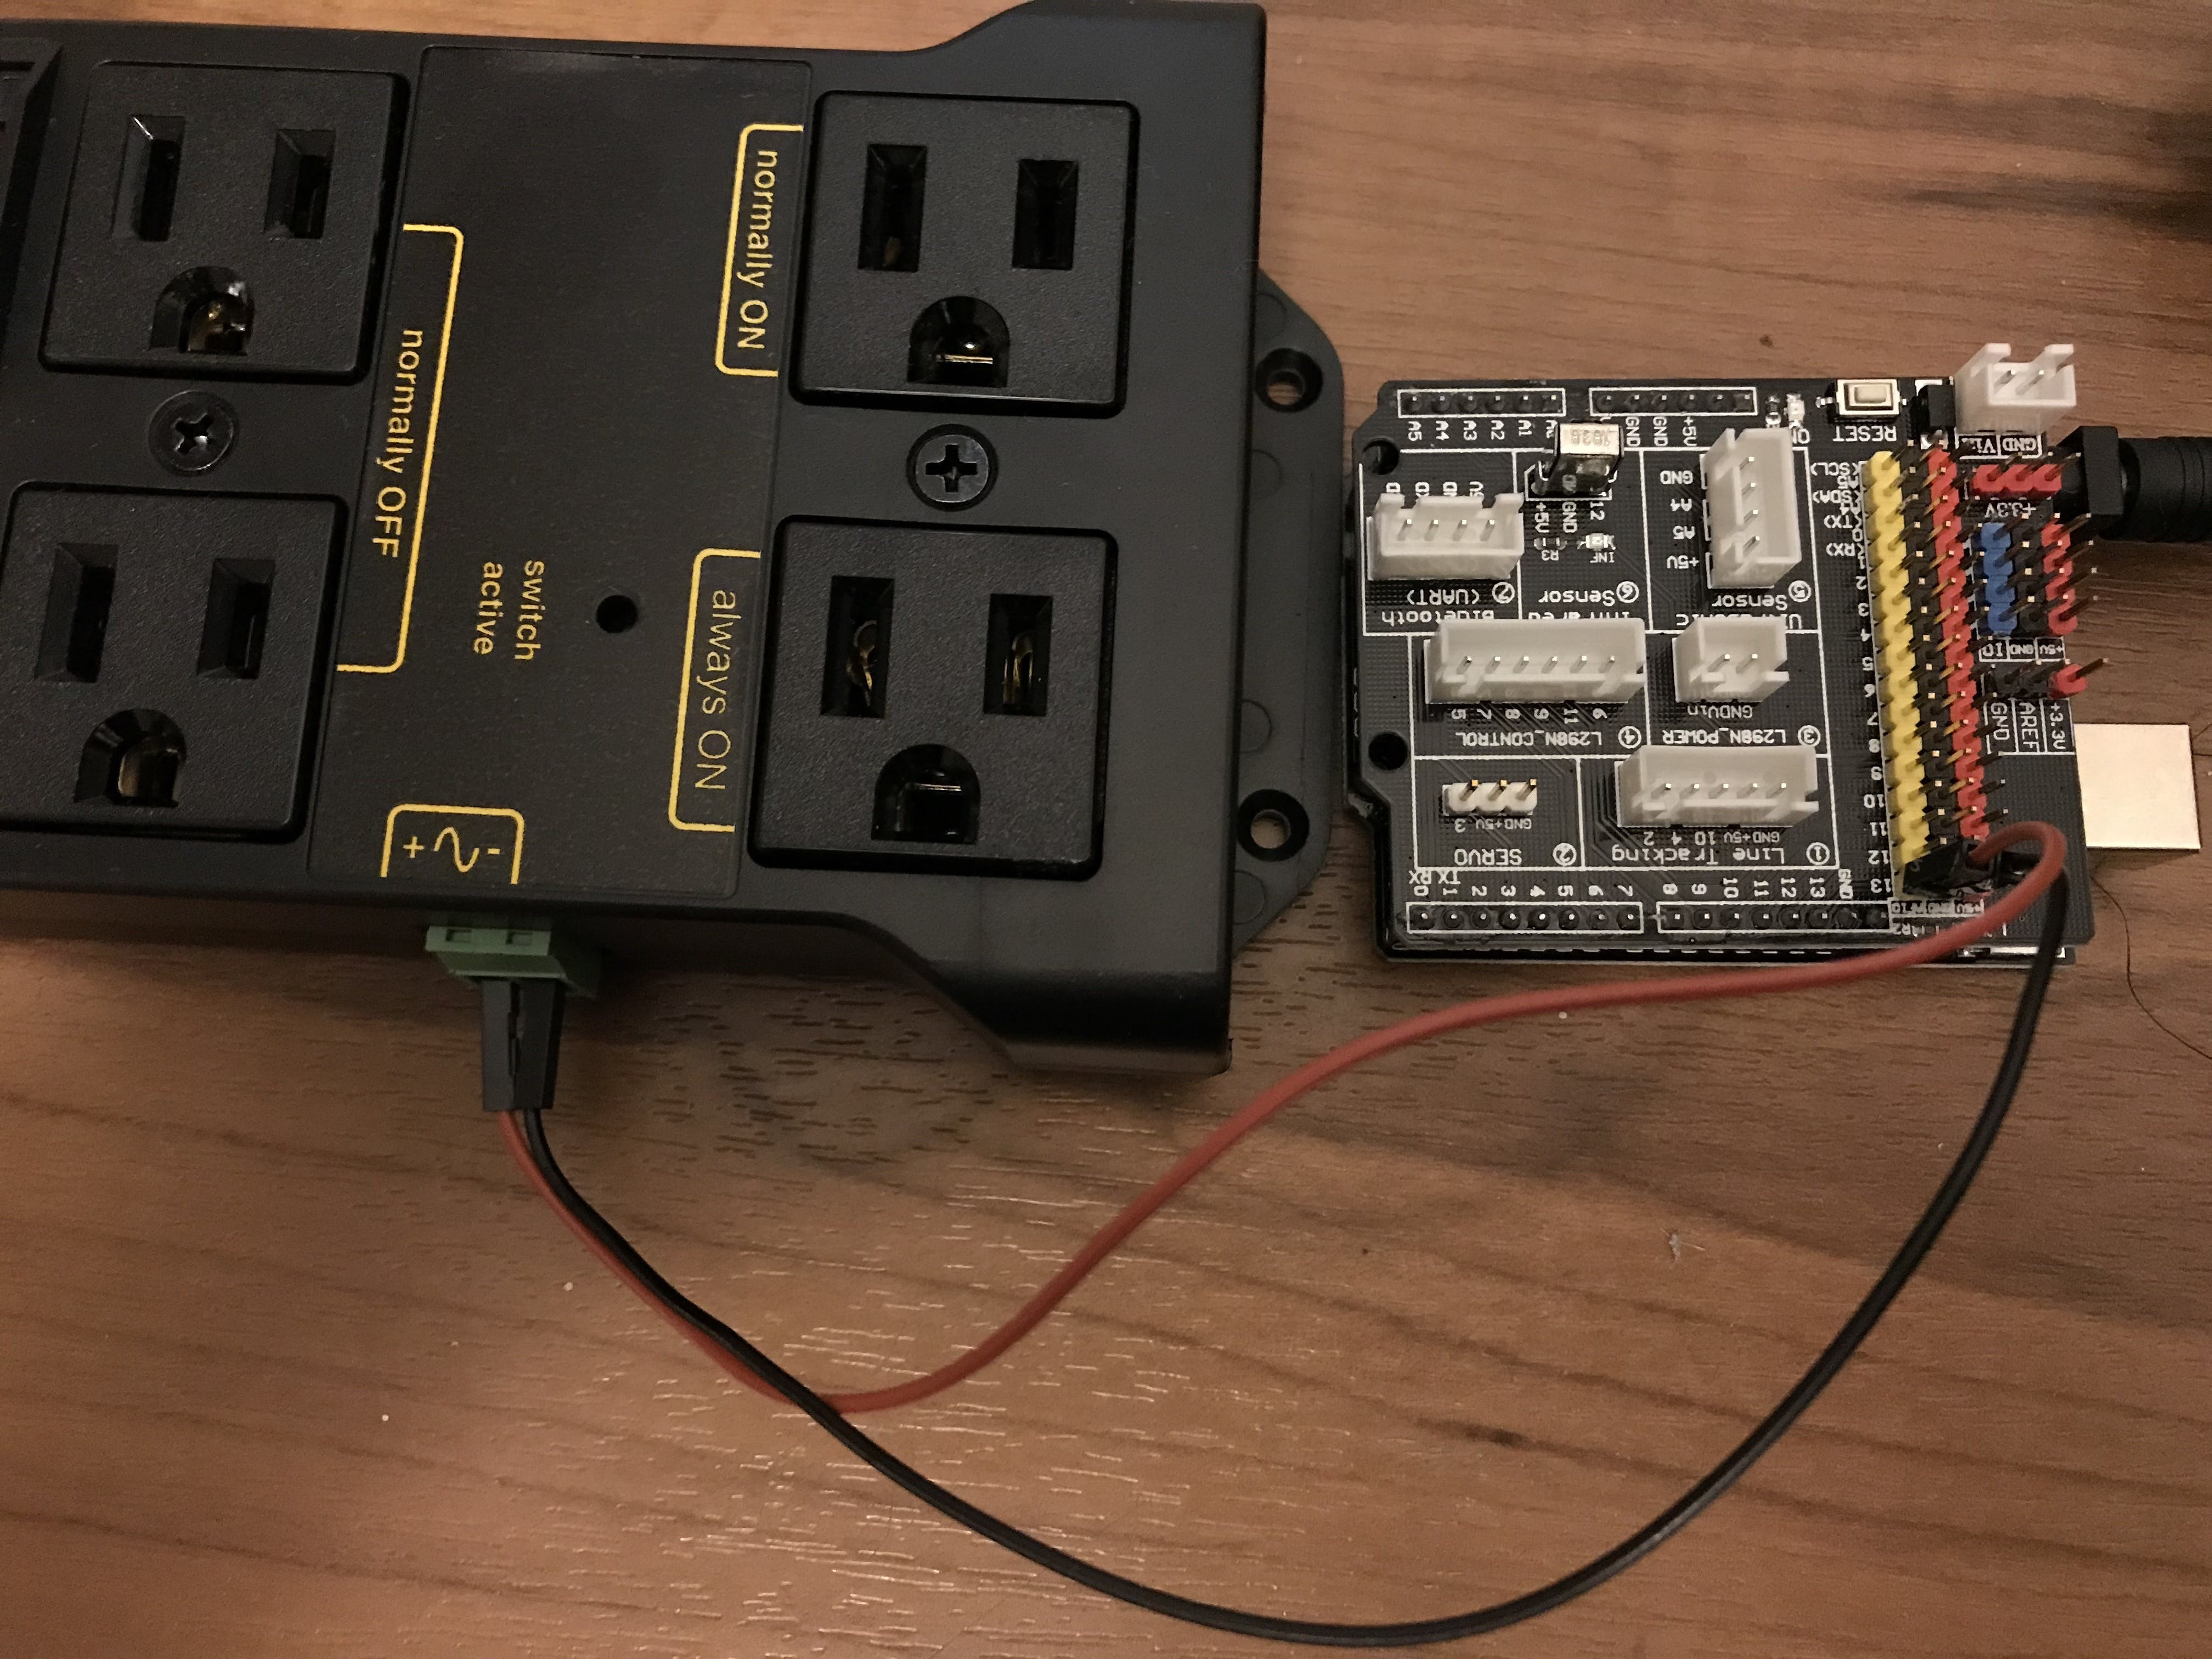 Wire connection between the Arduino and relay